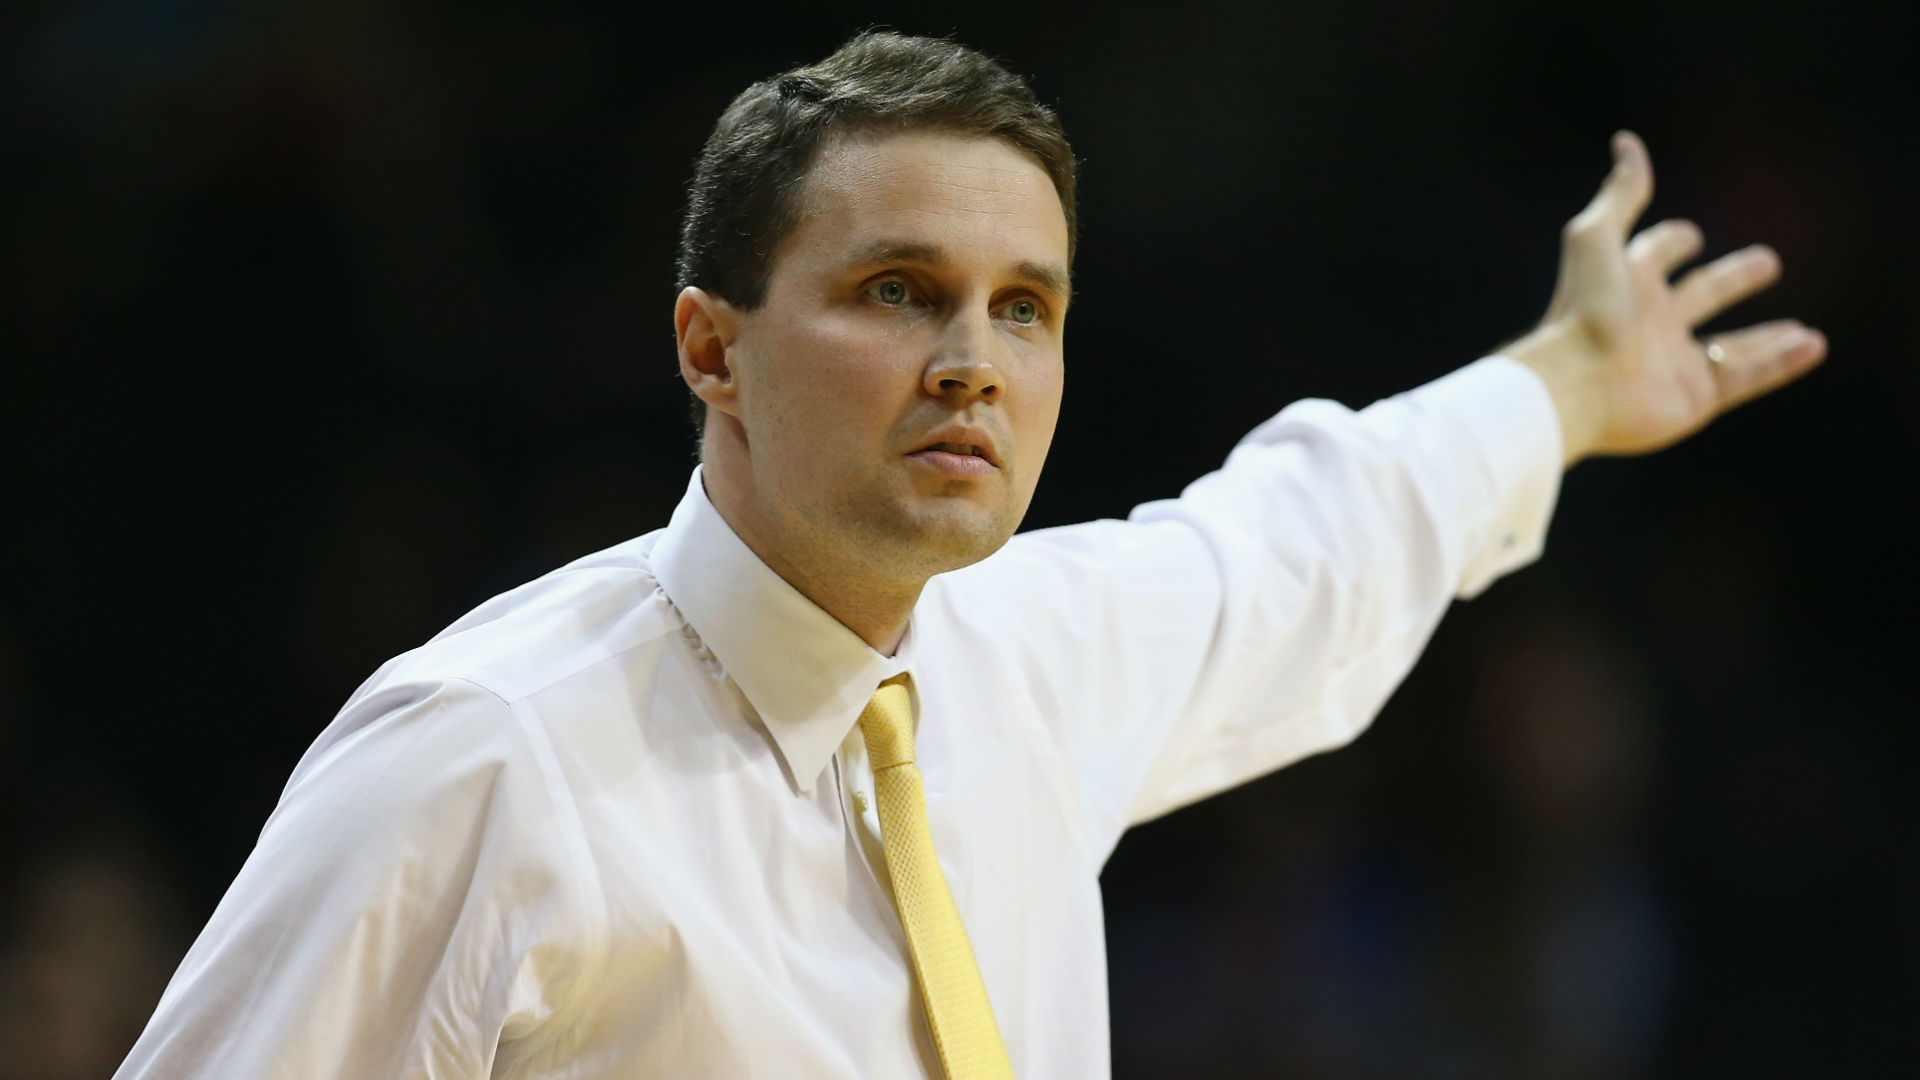 LSU Announces Decision On Head Coach Will Wade